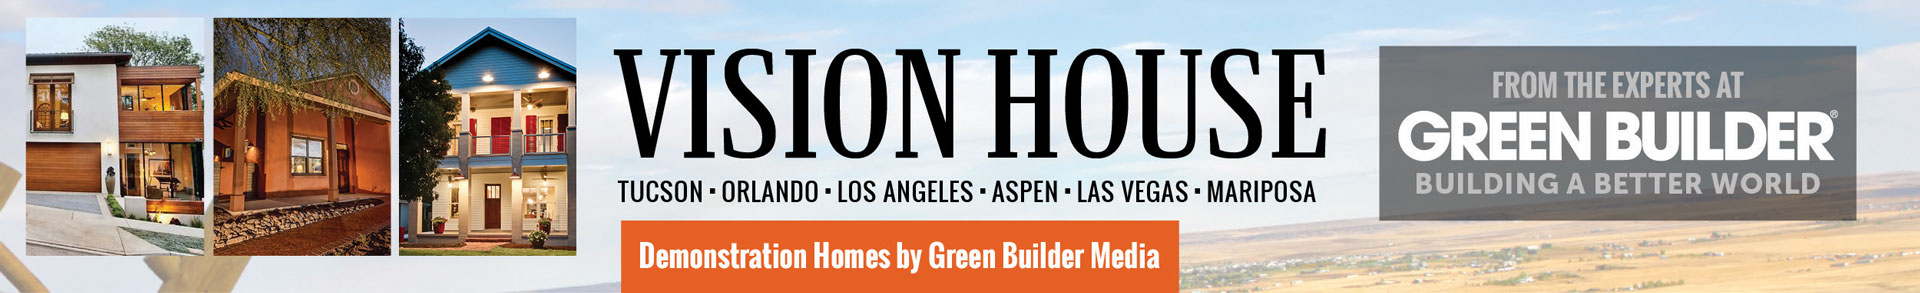 Green Builder Vision House Banner